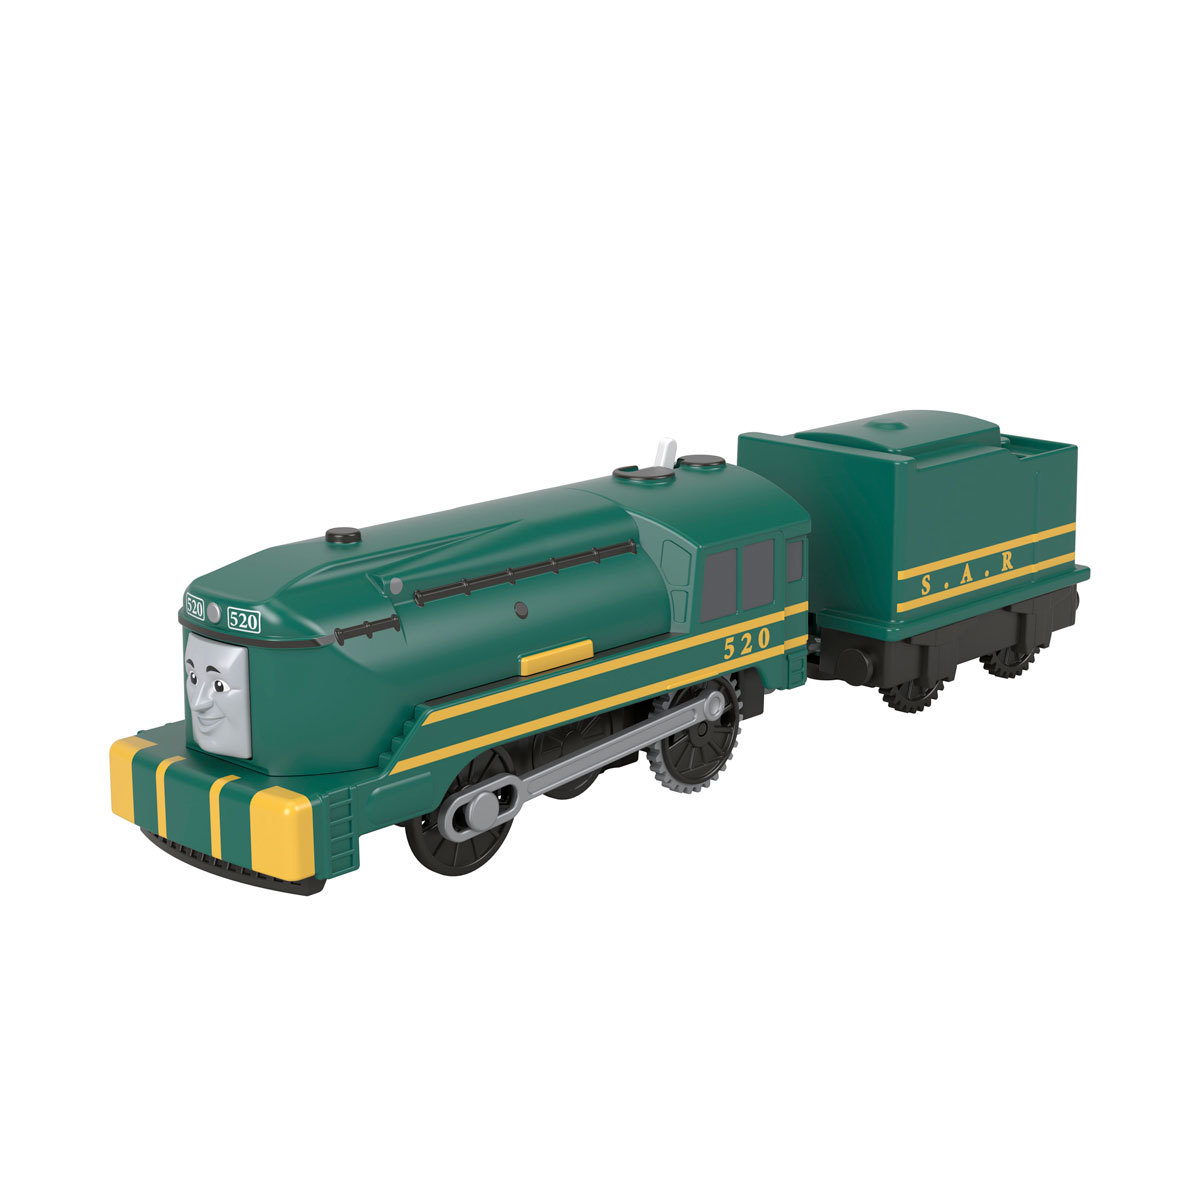 Fisher-Price Thomas & Friends Motorized Train - Shane from Early Learning Center